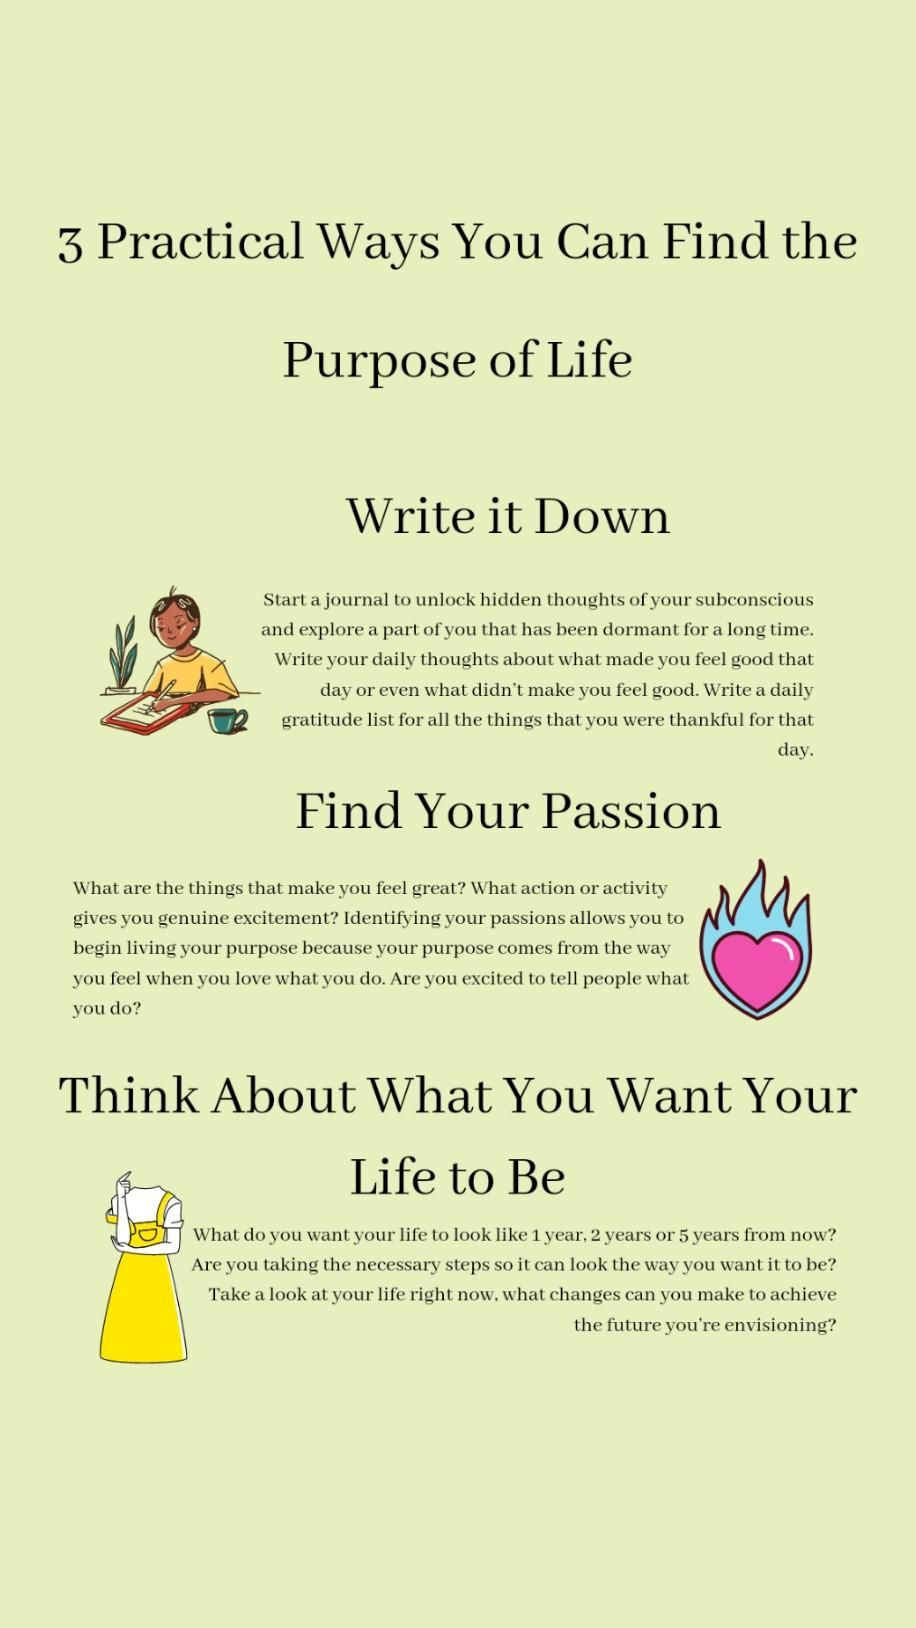 Time and stress management tips How to find your purpose in life